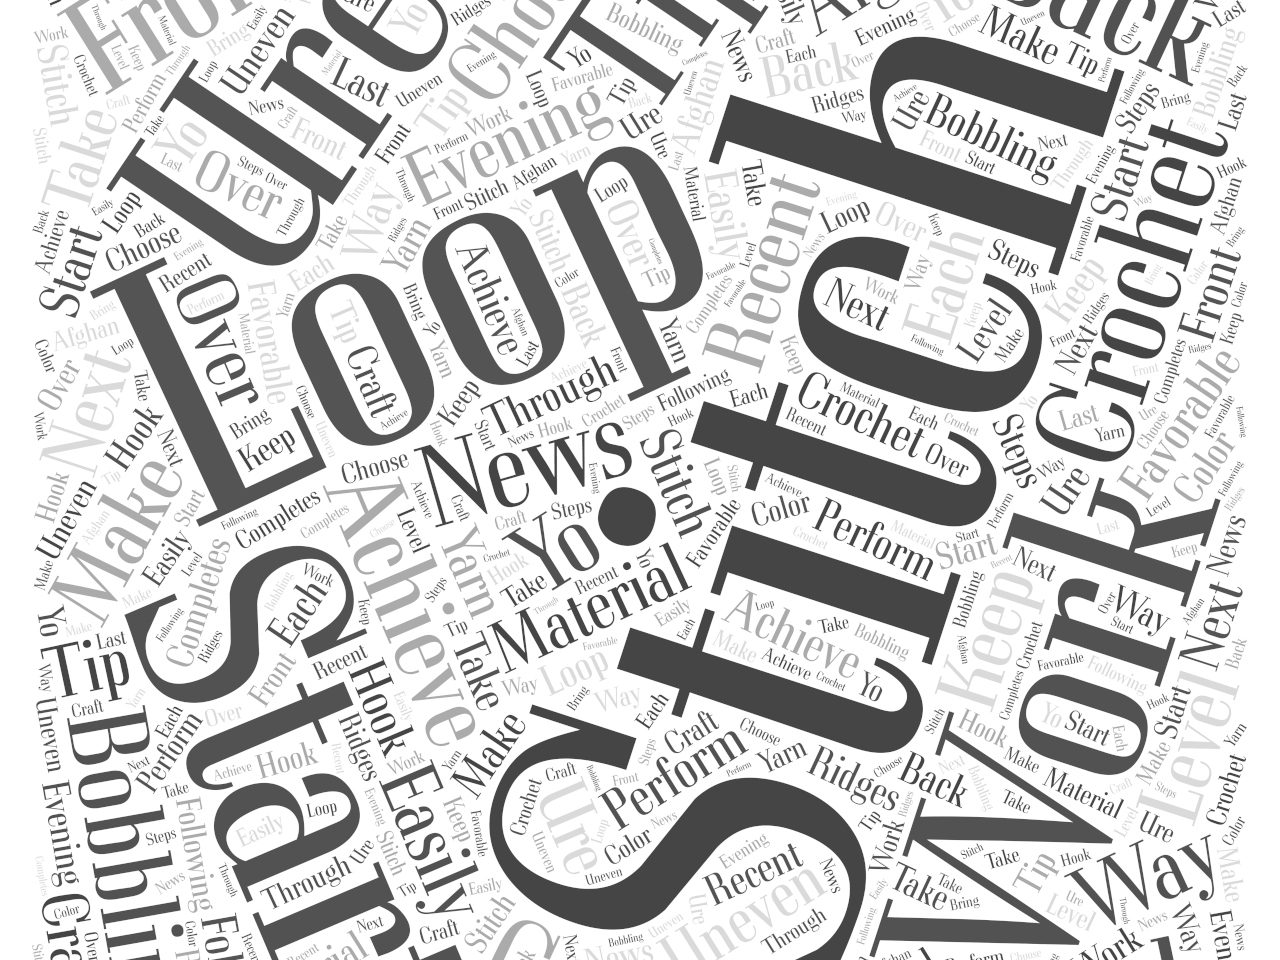 How to Craft the Evening News Afghan word cloud concept